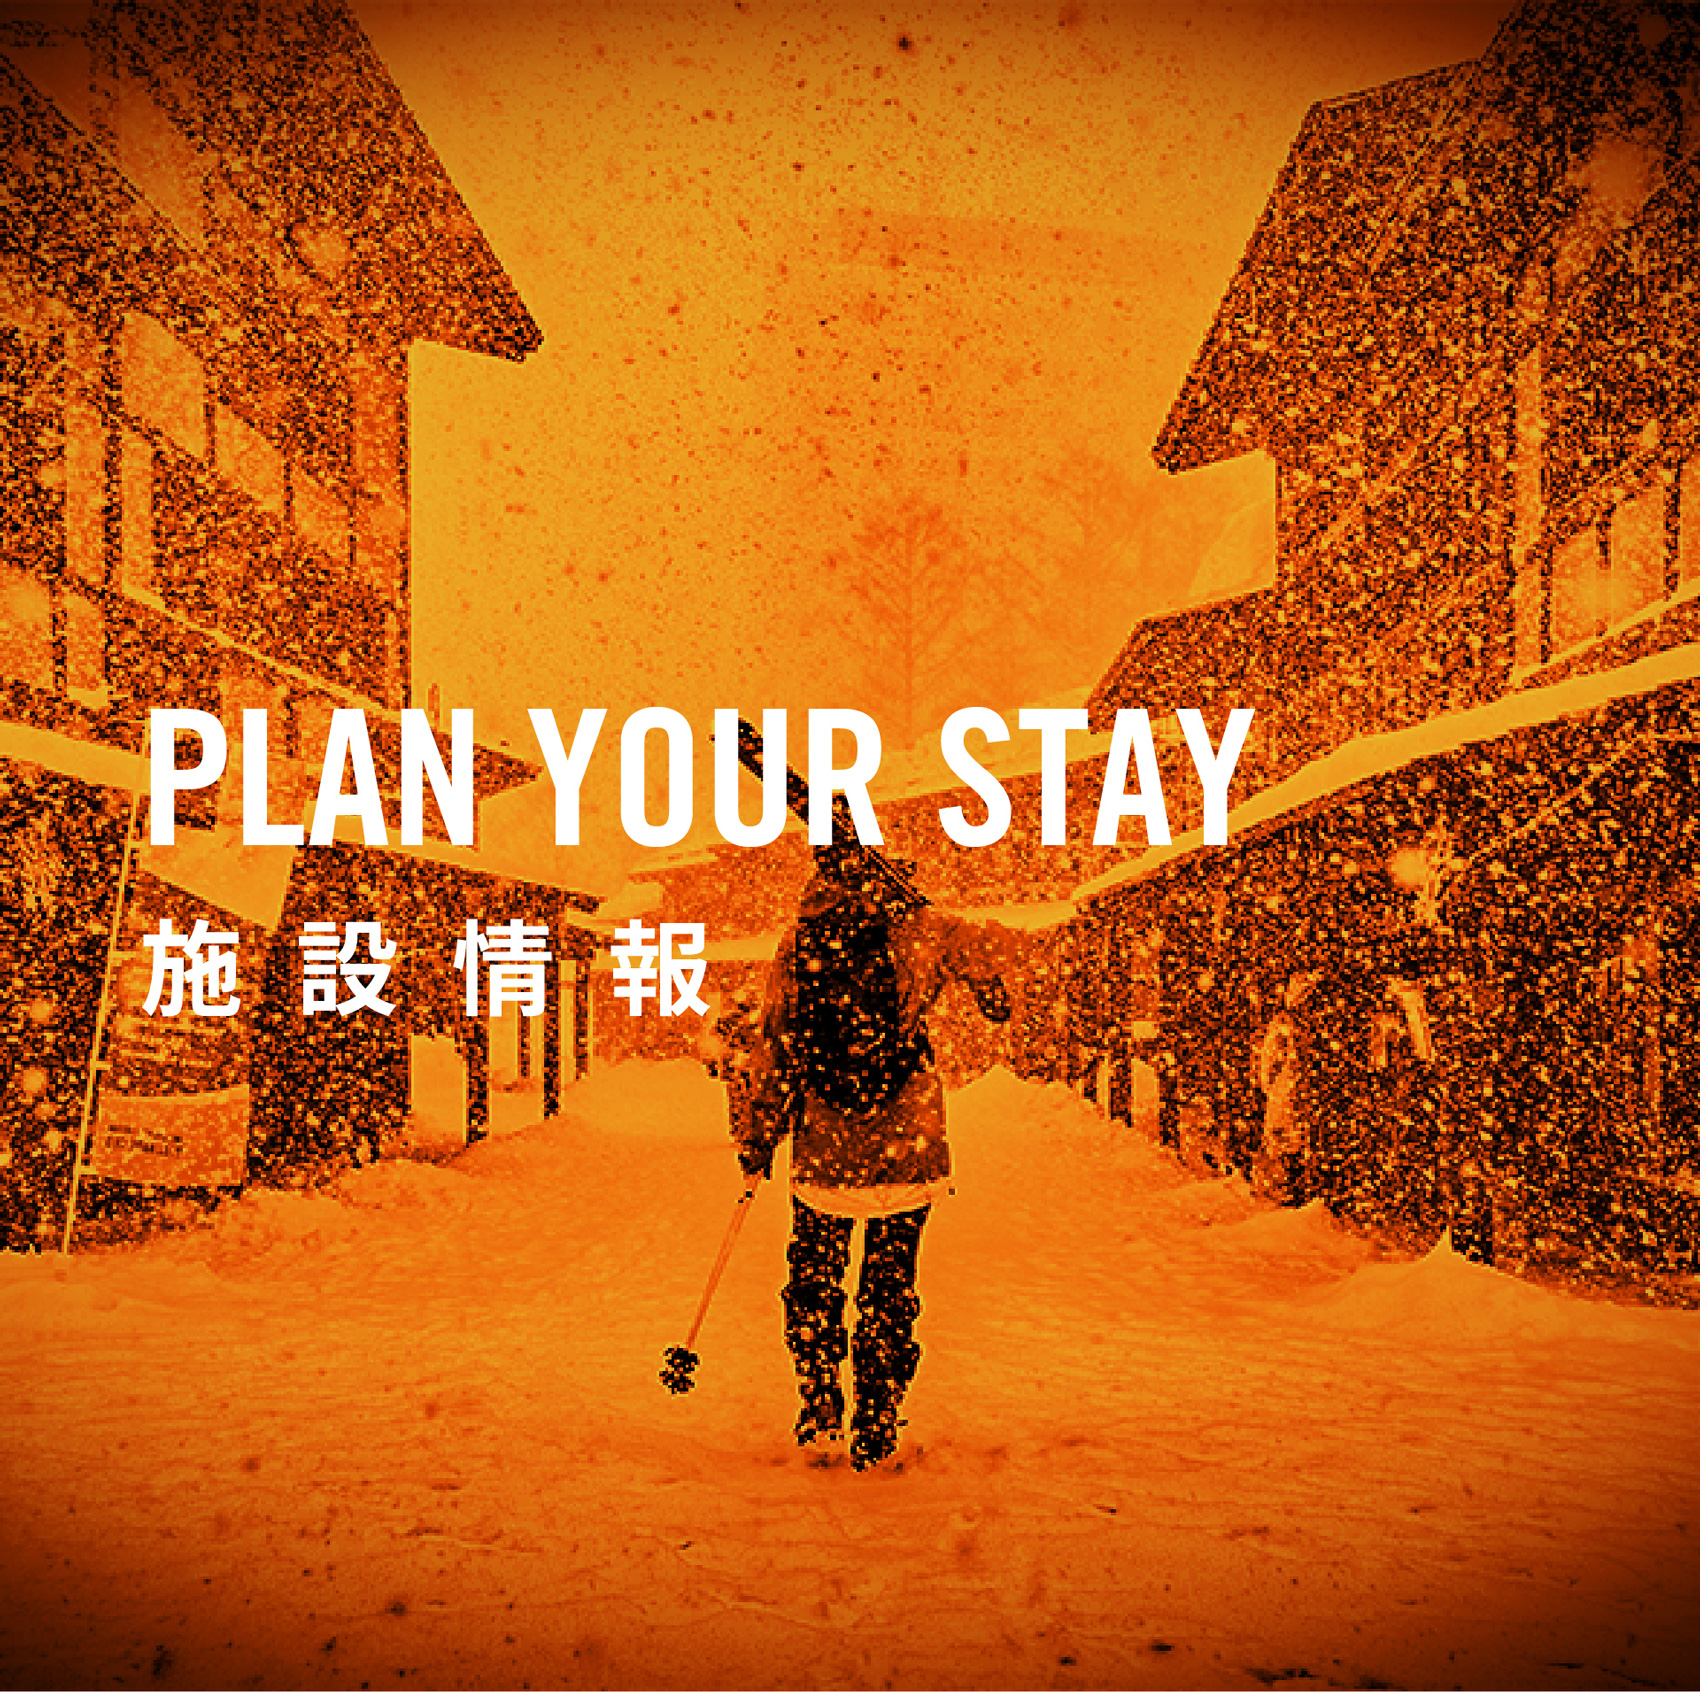 PLAN YOUR STAY